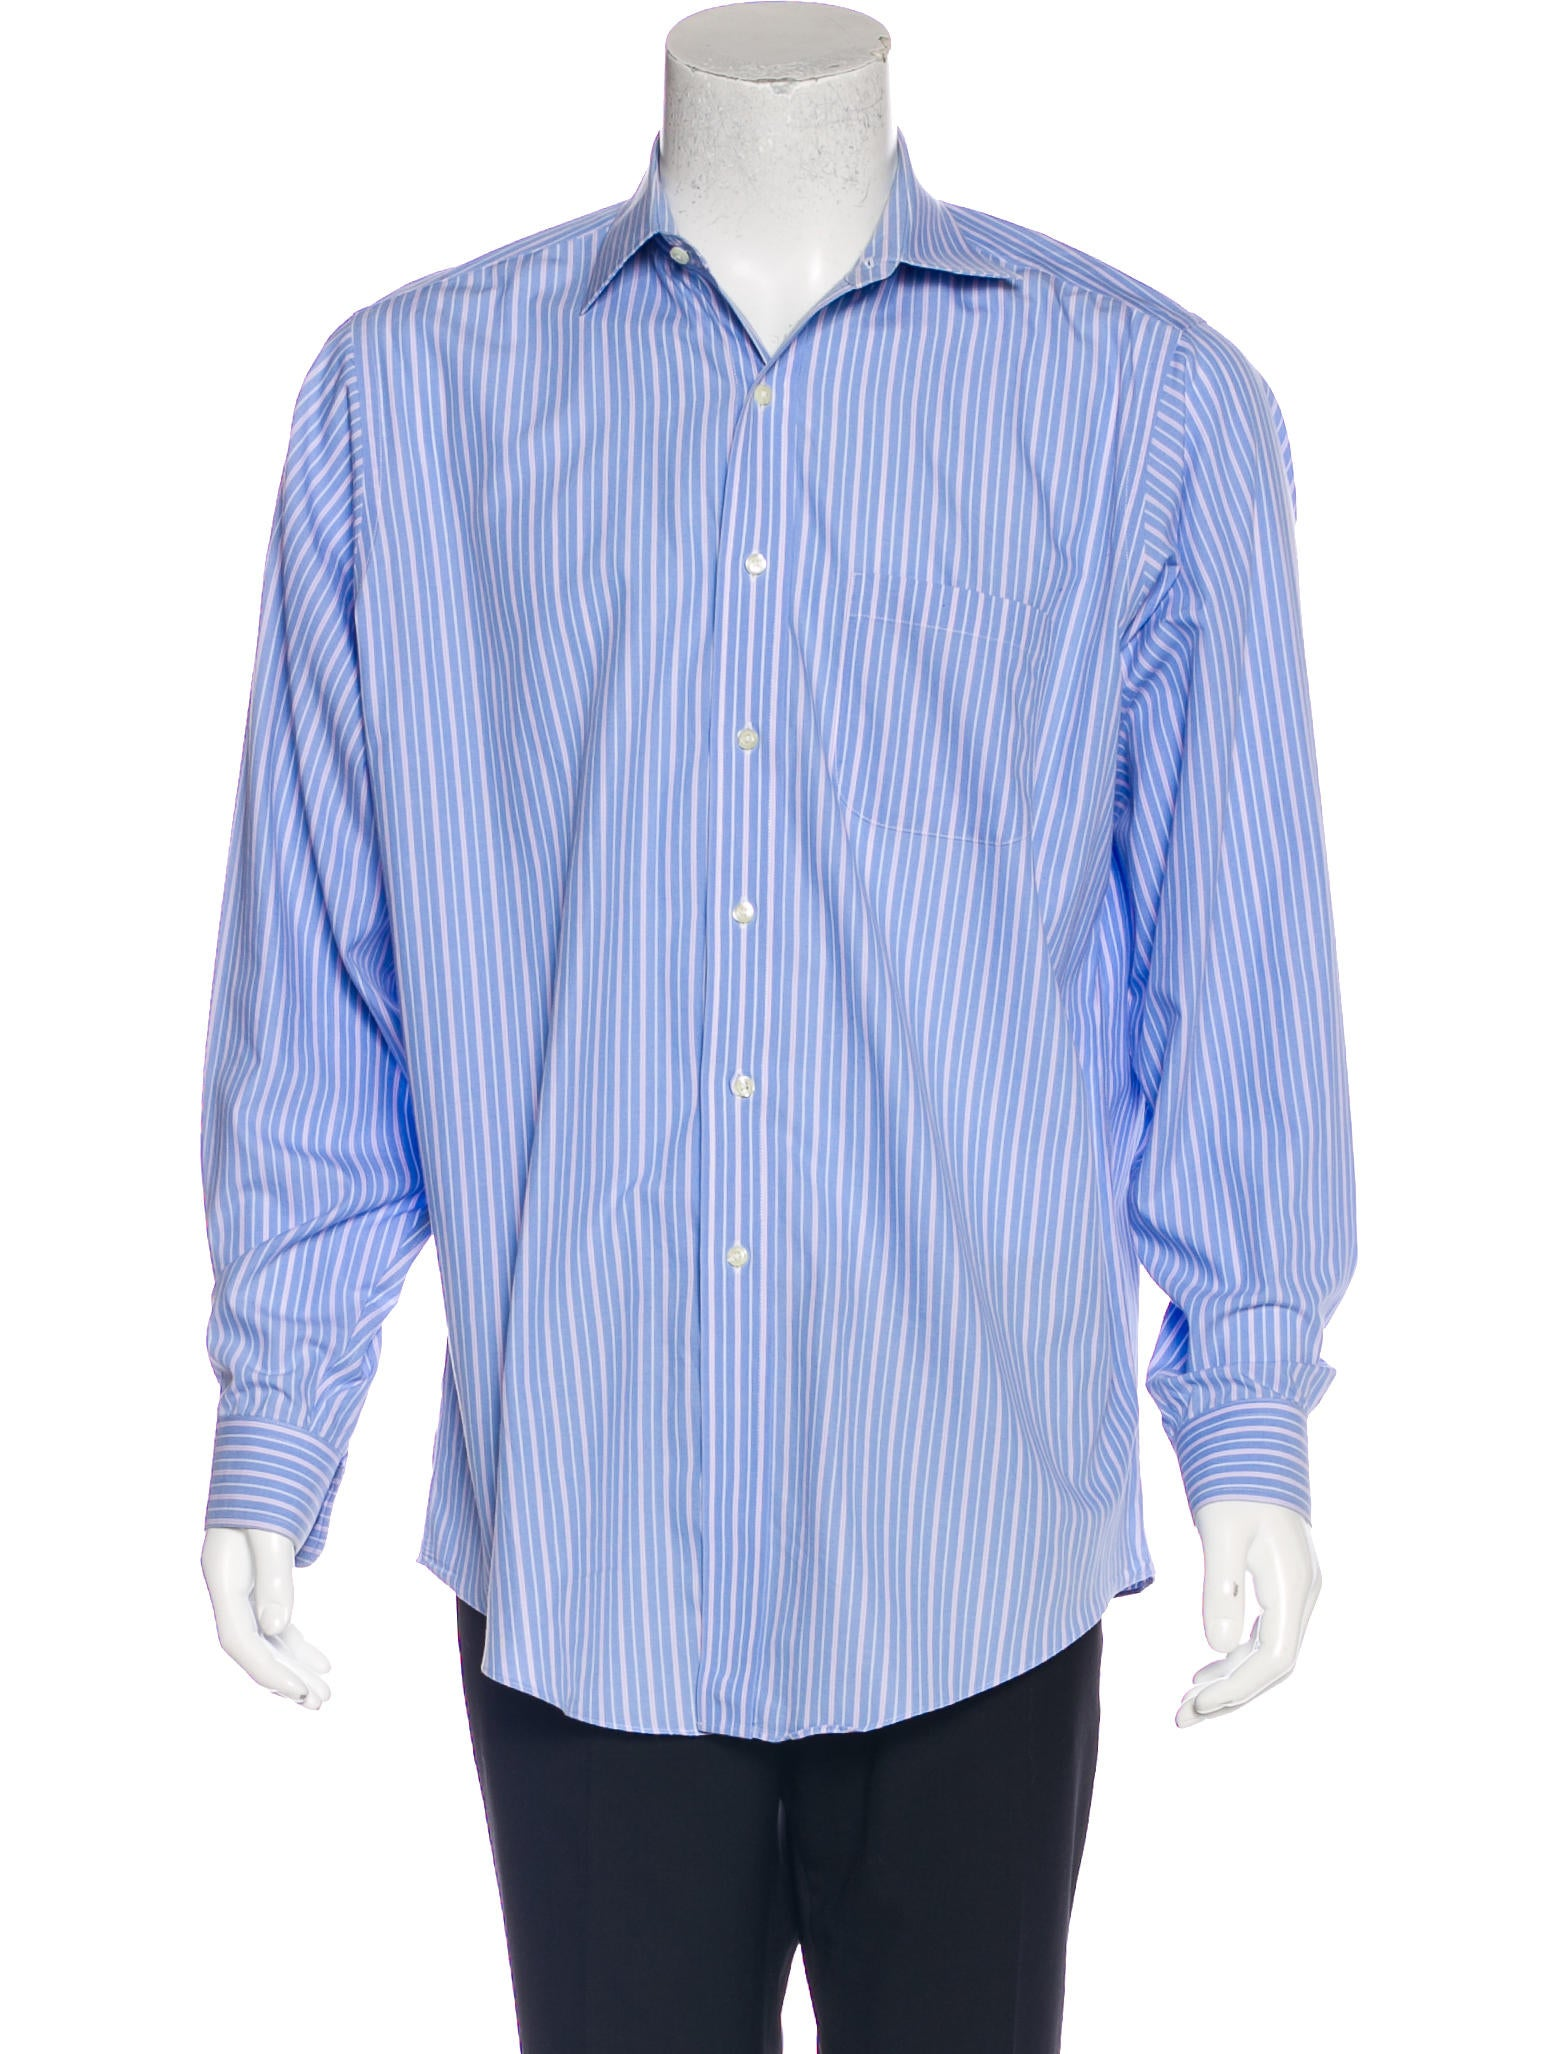 Brooks brothers traditional fit striped woven shirt for Brooks brothers dress shirt fit